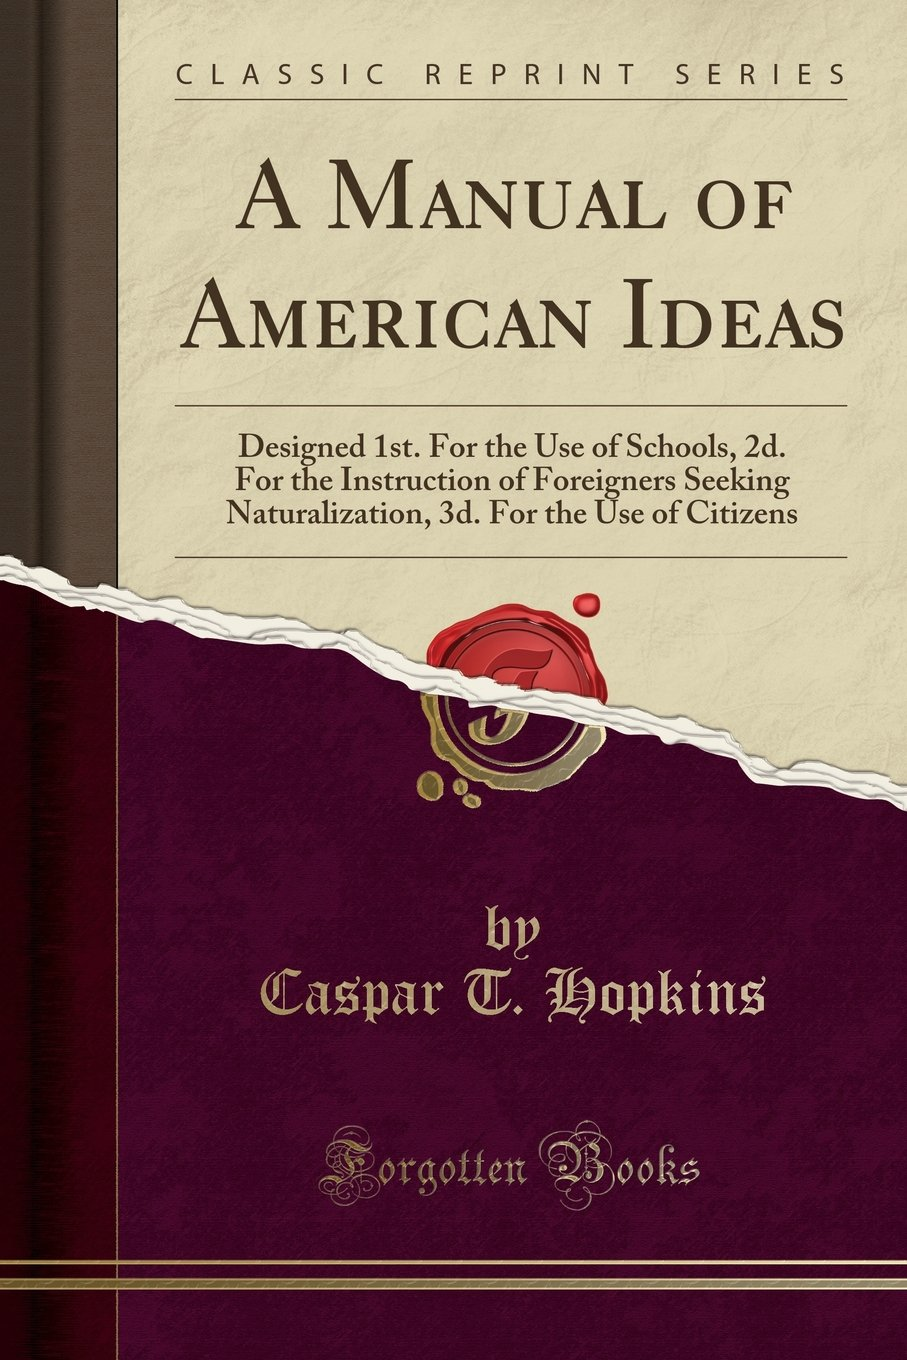 A Manual of American Ideas: Designed 1st. For the Use of Schools, 2d. For the Instruction of Foreigners Seeking Naturalization, 3d. For the Use of Citizens (Classic Reprint) PDF